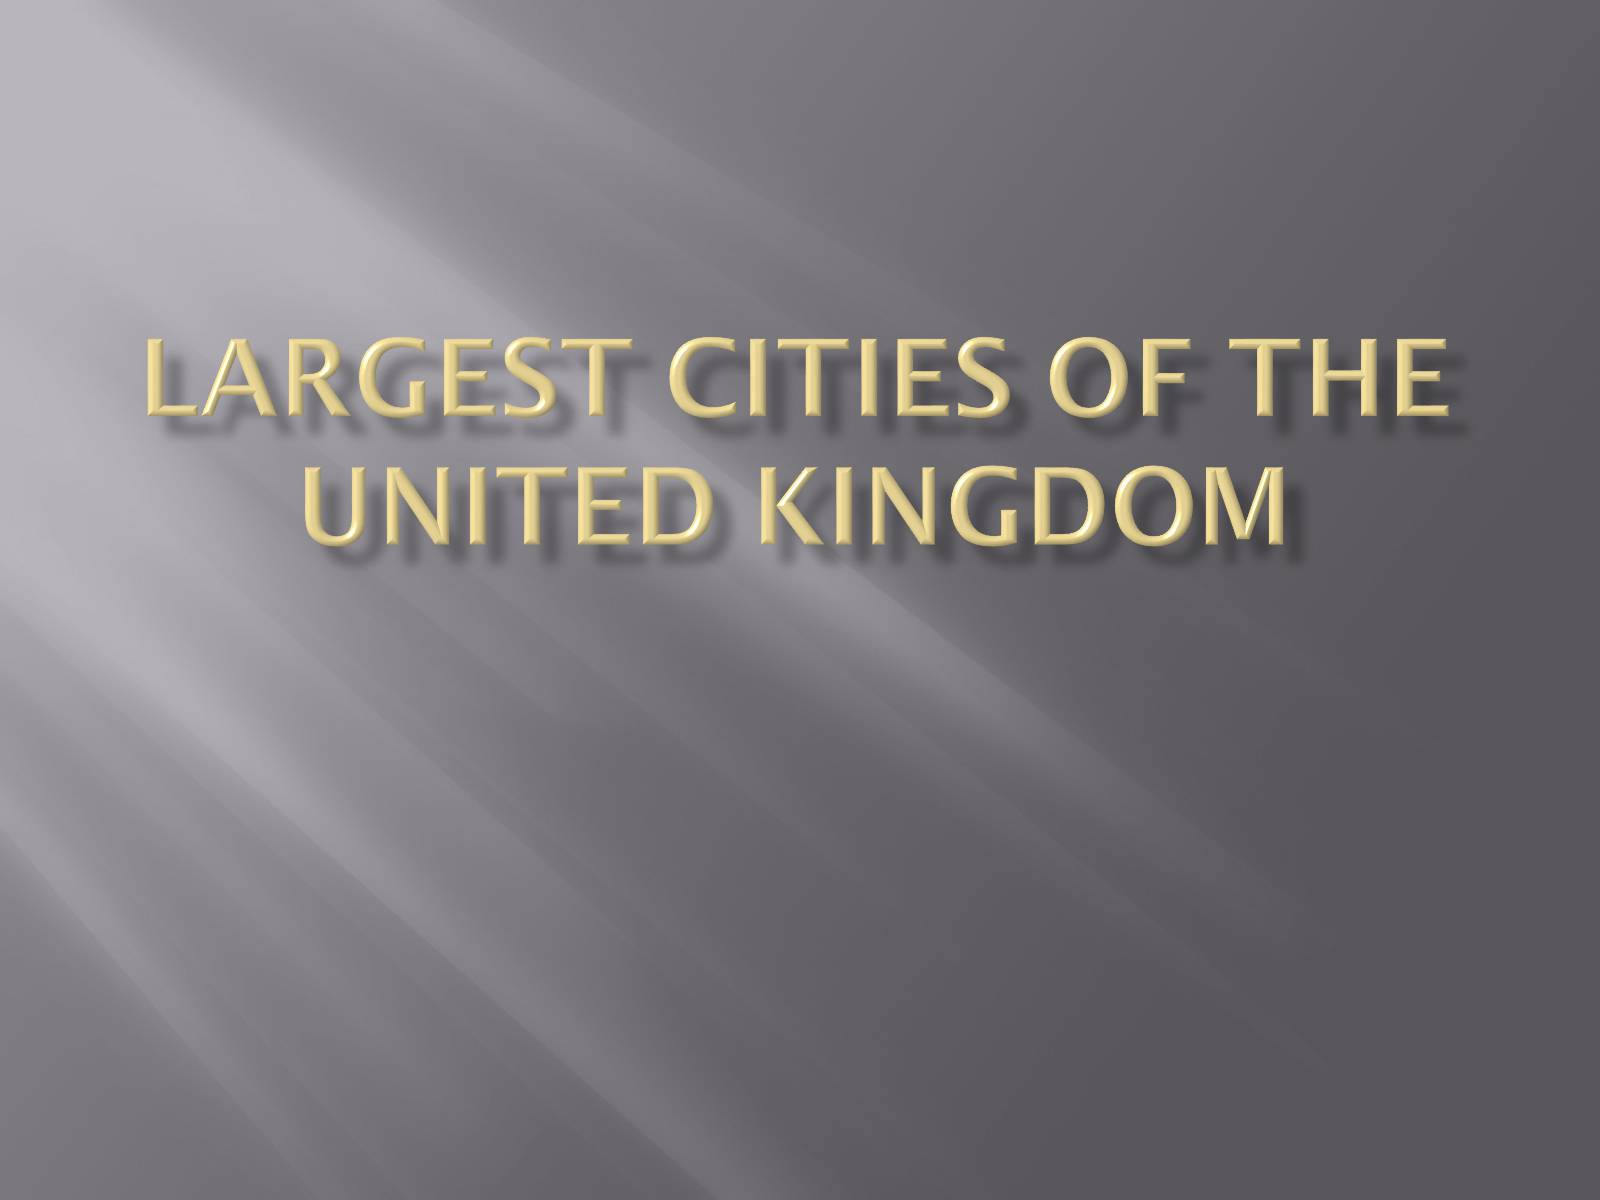 Презентація на тему «Largest cities of the United Kingdom»